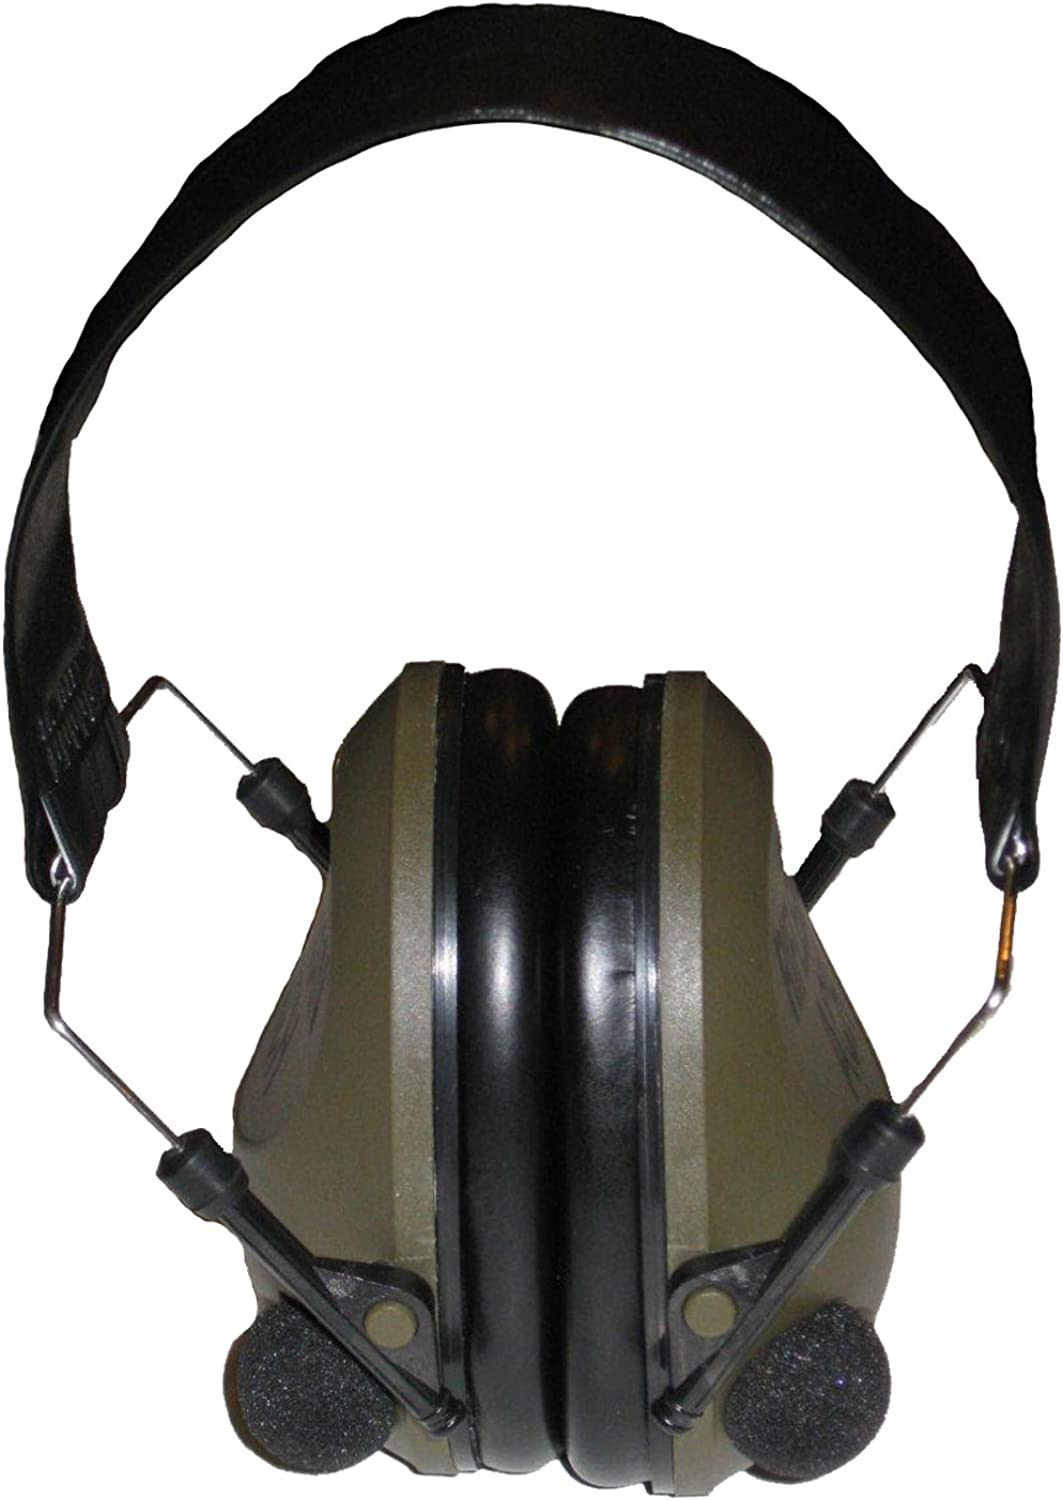 Rifleman Sound Amplification and Hearing sold out Electronic Wholesale Suppression